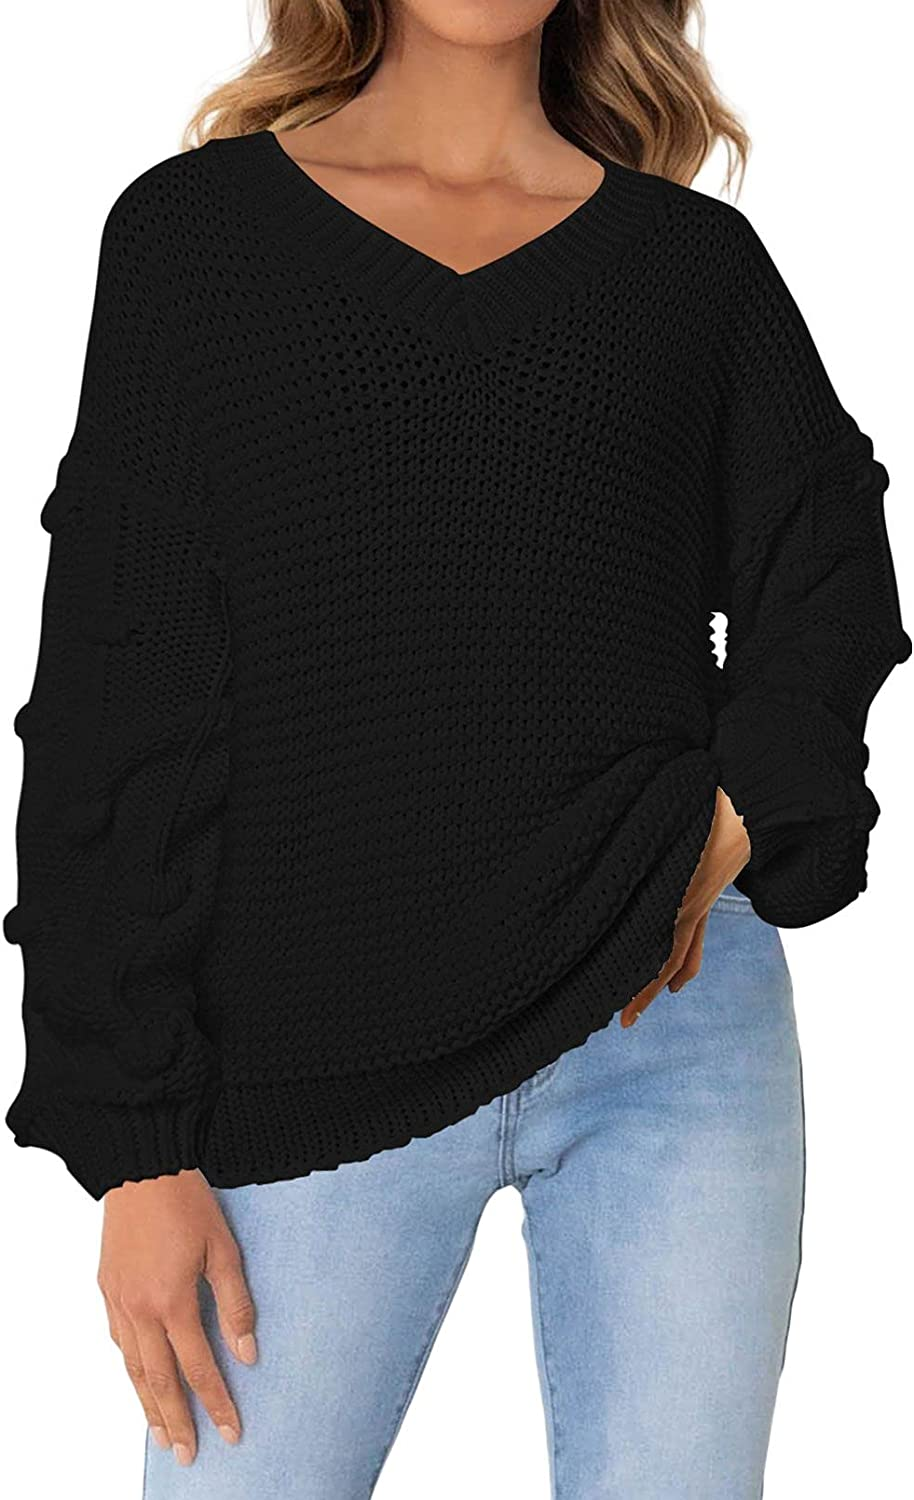 Selowin Women Discount mail order Super beauty product restock quality top! Knit Sweater V Neck Loose T Casual Chunky Pullover